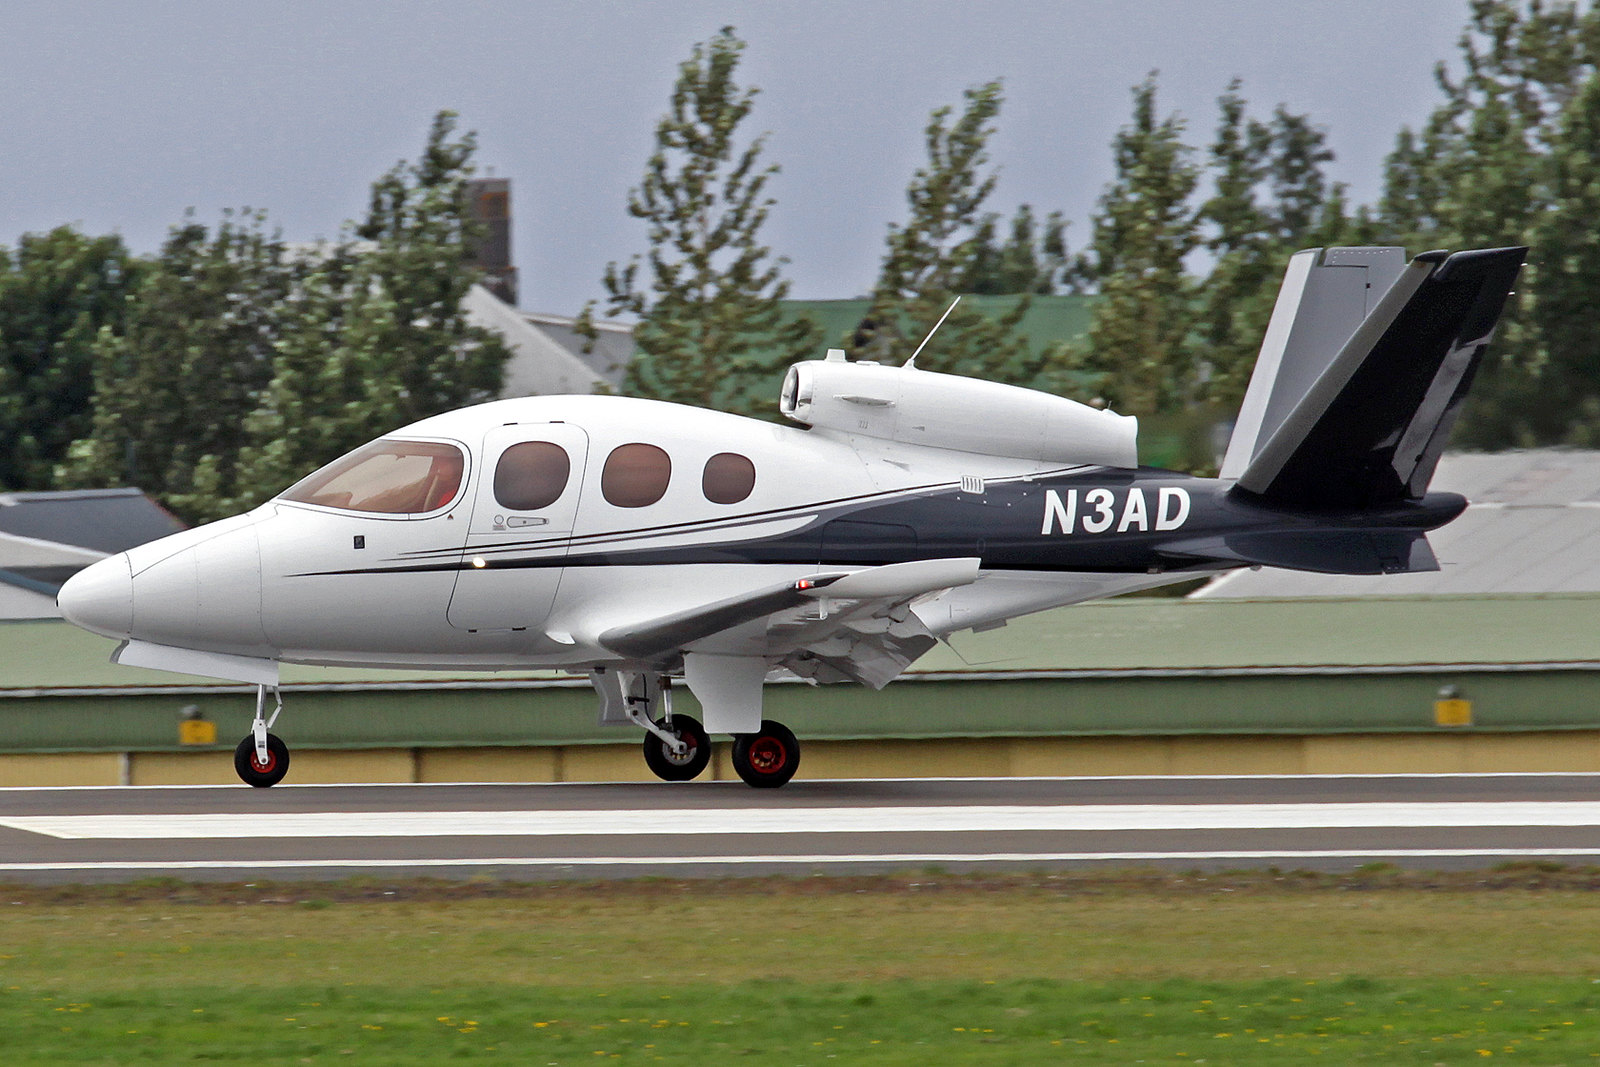 Aircraft Guaranty Corp. Trustee Cirrus SF-50 N3AD, RKV, 10. August 2020